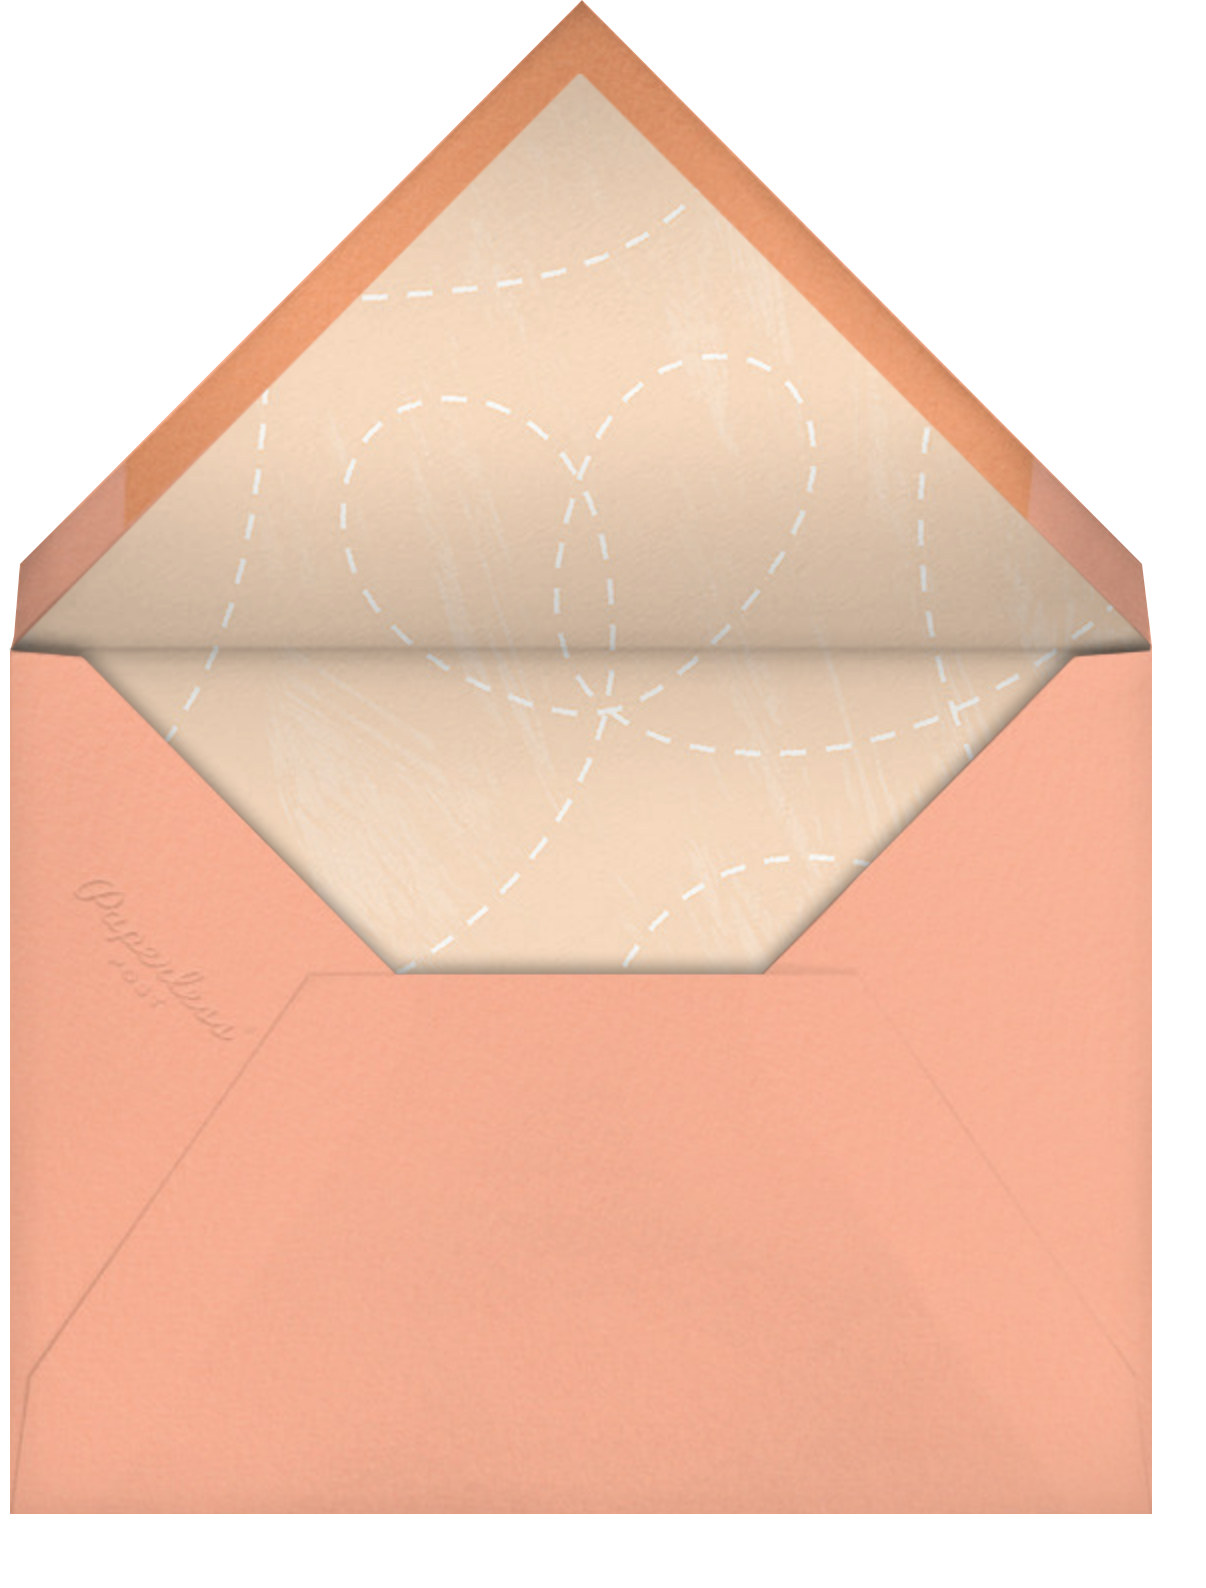 Together In Spirit - Paperless Post - Mother's Day - envelope back